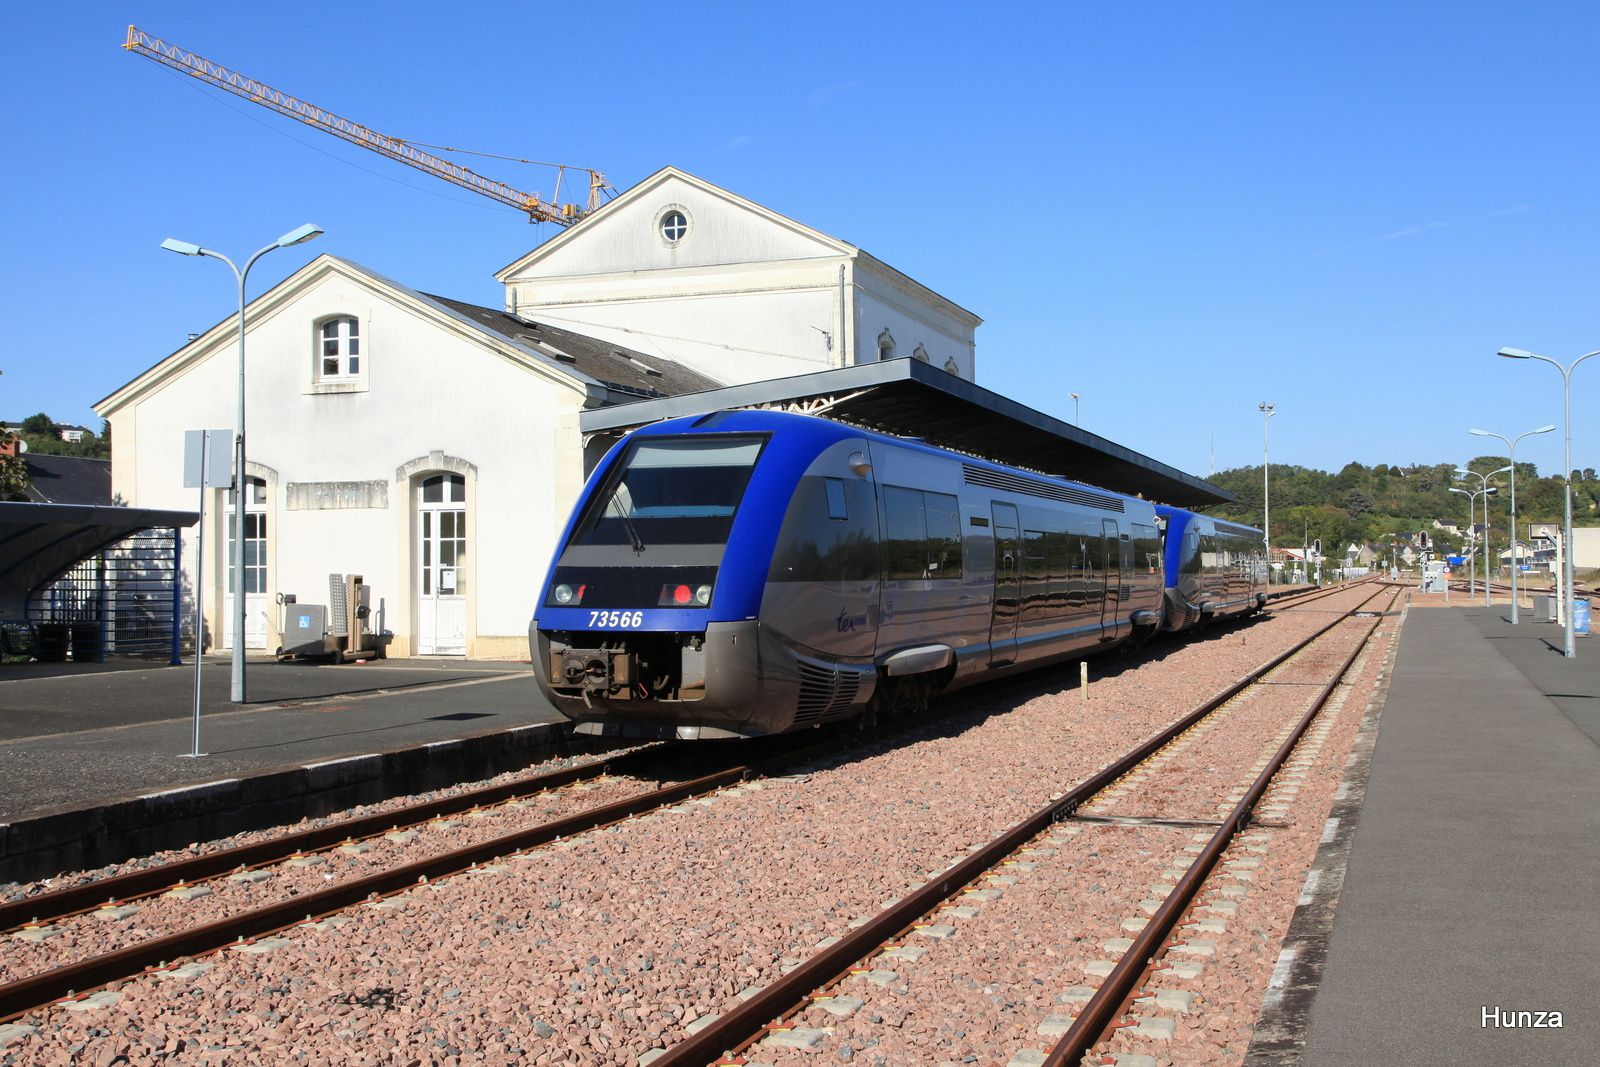 Chinon : X 73566 assurant le TER Tours - Chinon n°860317 (29 septembre 2015)